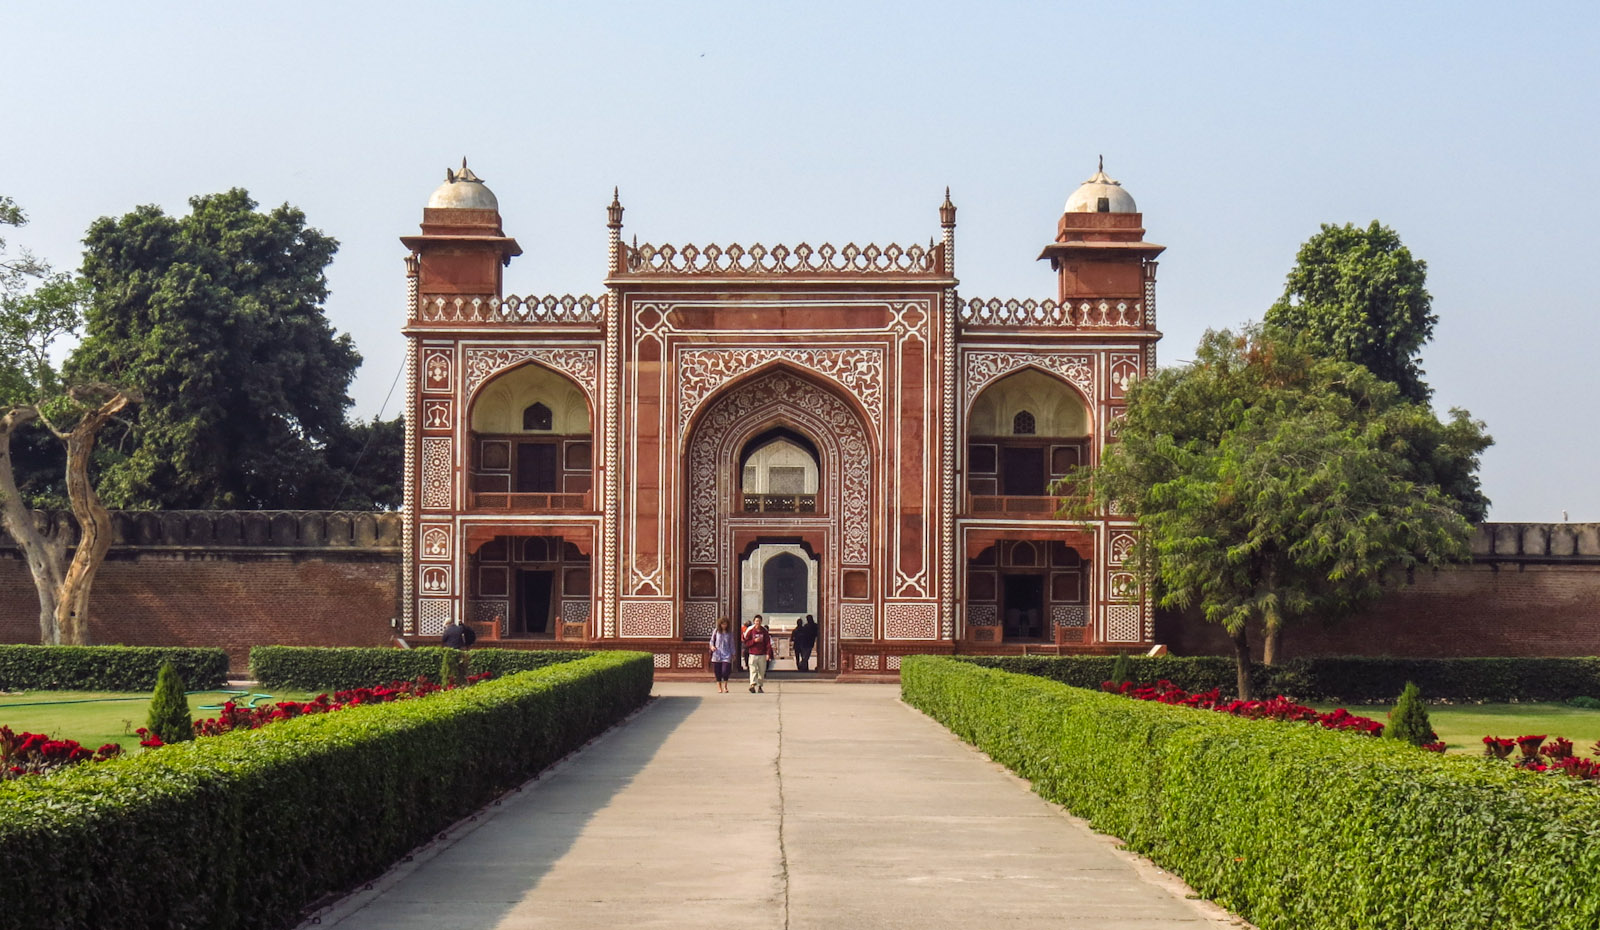 tomb-of-itimad-ud-daulah-entrance-gate-agra-india